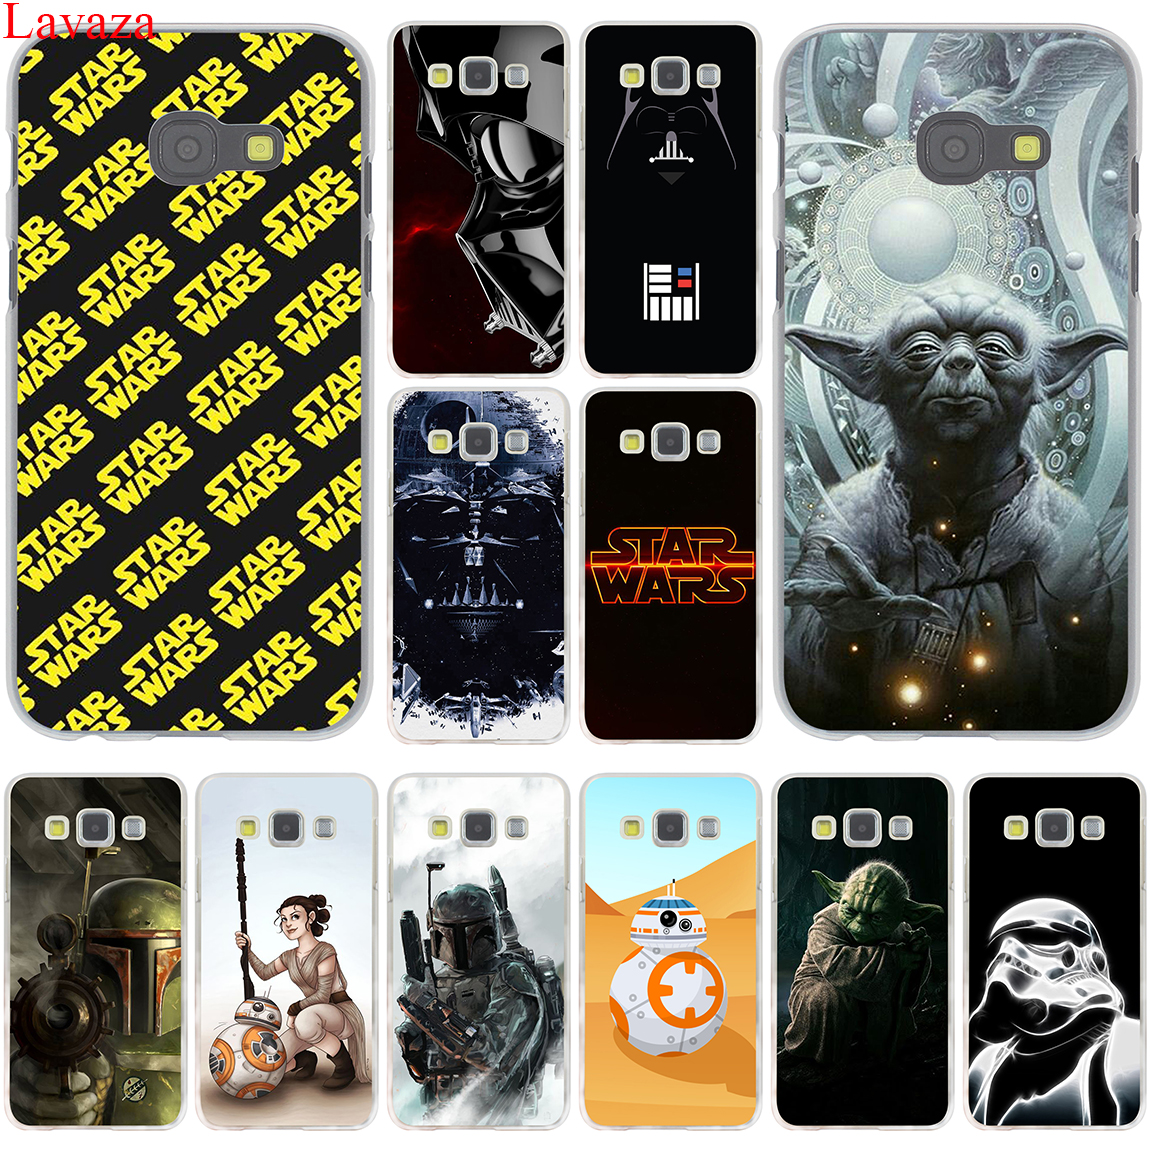 YODA STAR WARS The Force Awakens Hard Case Cover for Samsung Galaxy A3 A5 J3 J5 J7 2015 2016 2017 & Grand Prime Note 2 3 4 5